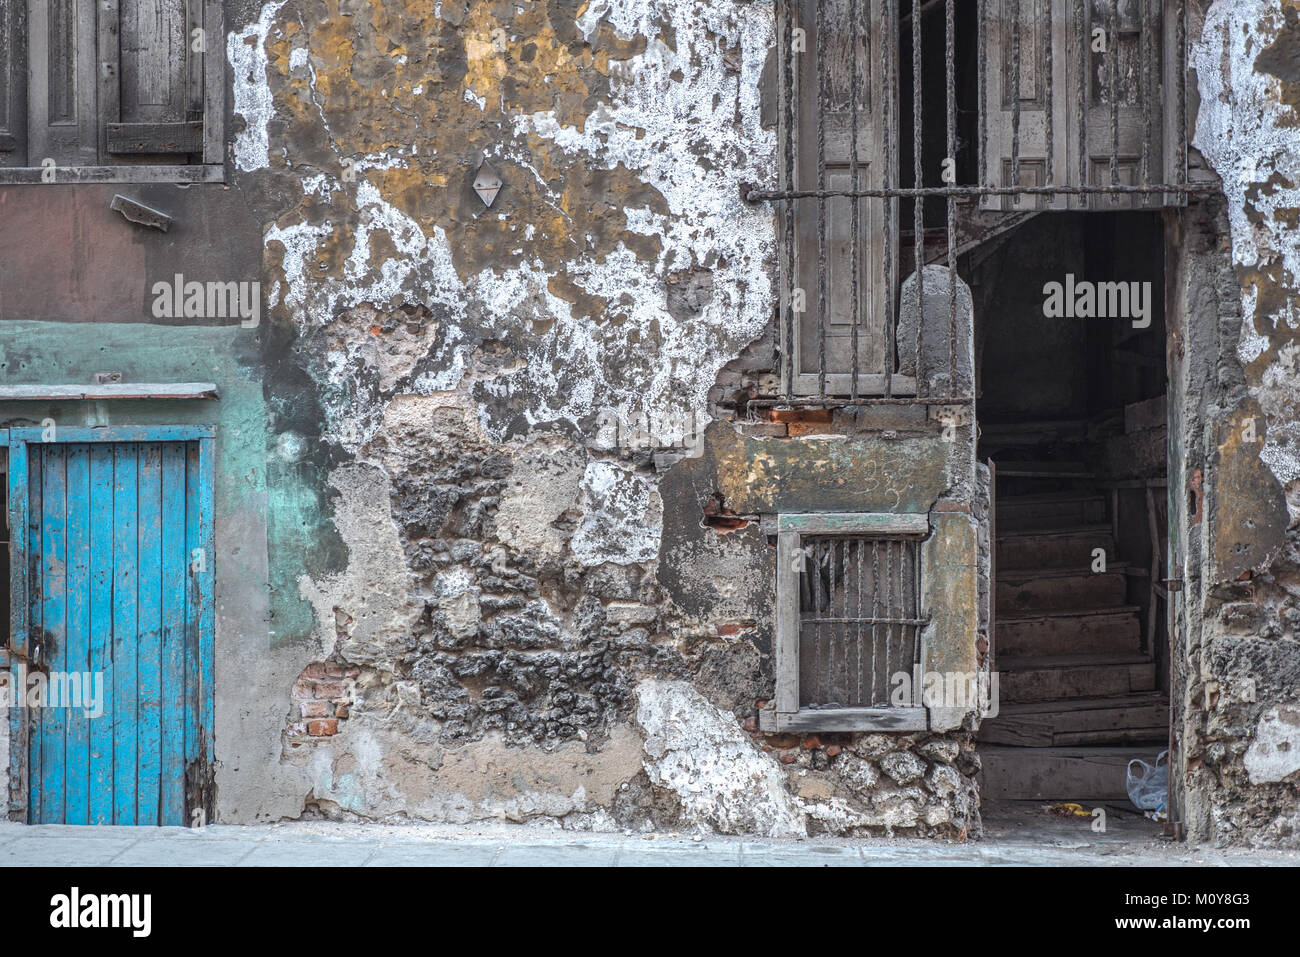 Decrepit colonial building with blue door and staircase in Havana, Cuba - Stock Image